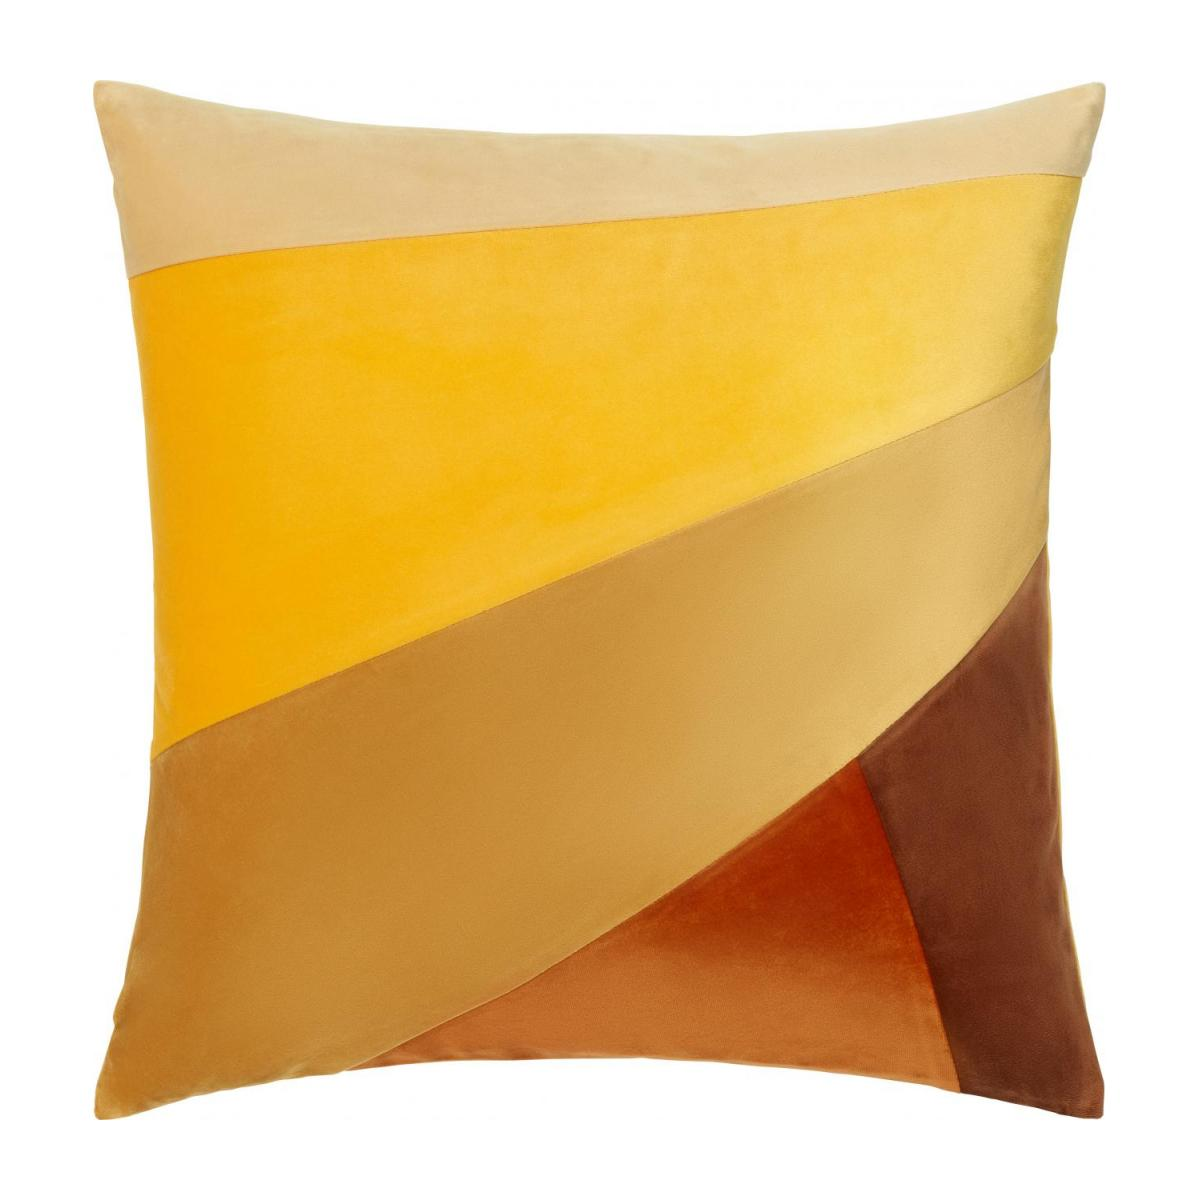 Coussin - Patchwork - Jaune - design by Floriane Jacques n°1